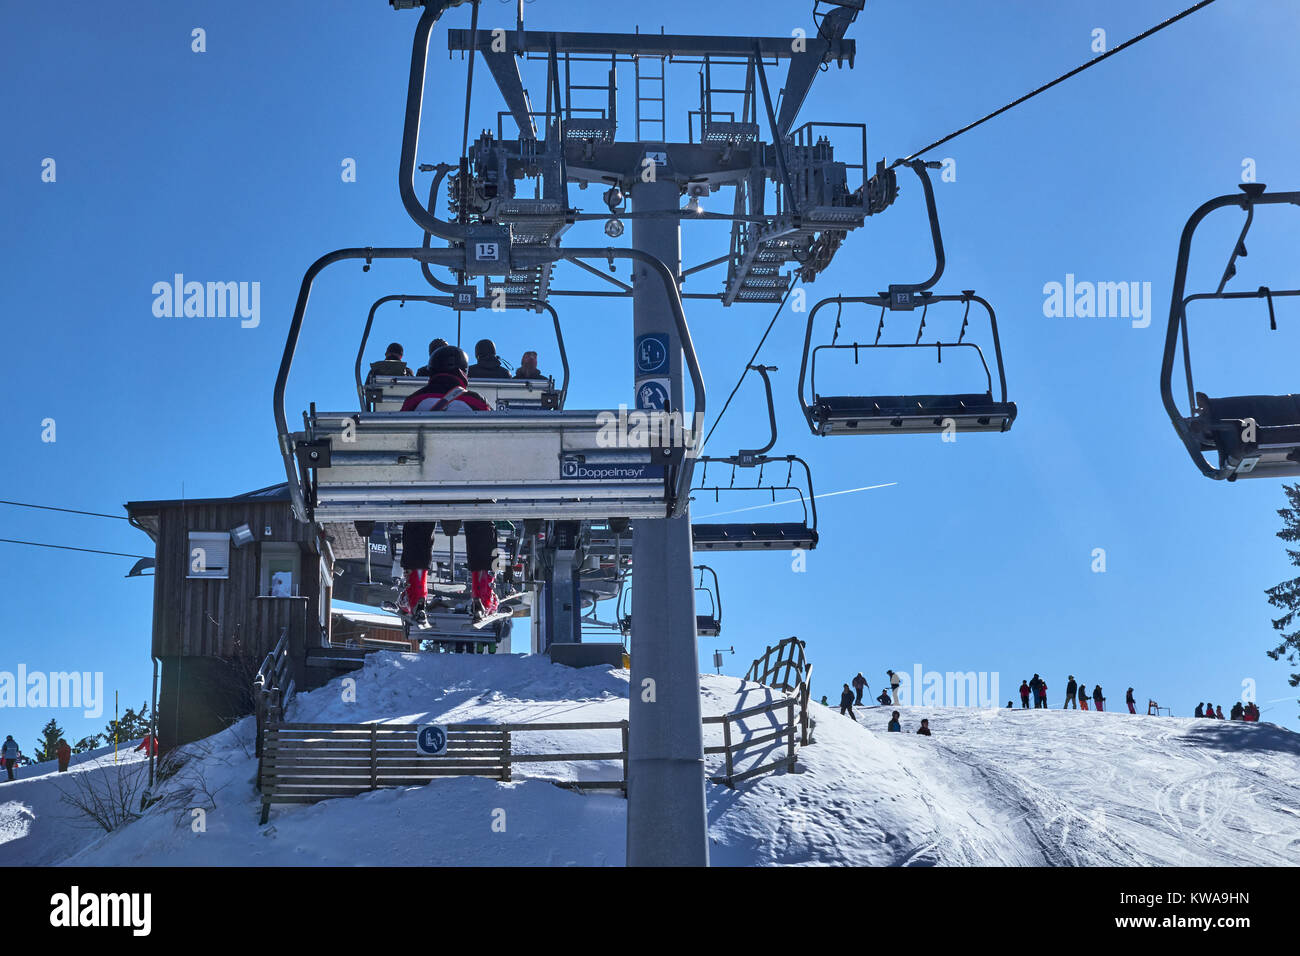 WINTERBERG, GERMANY - FEBRUARY 14, 2017: People sitting up high above the pistes in a chairlift at Ski Carousel - Stock Image